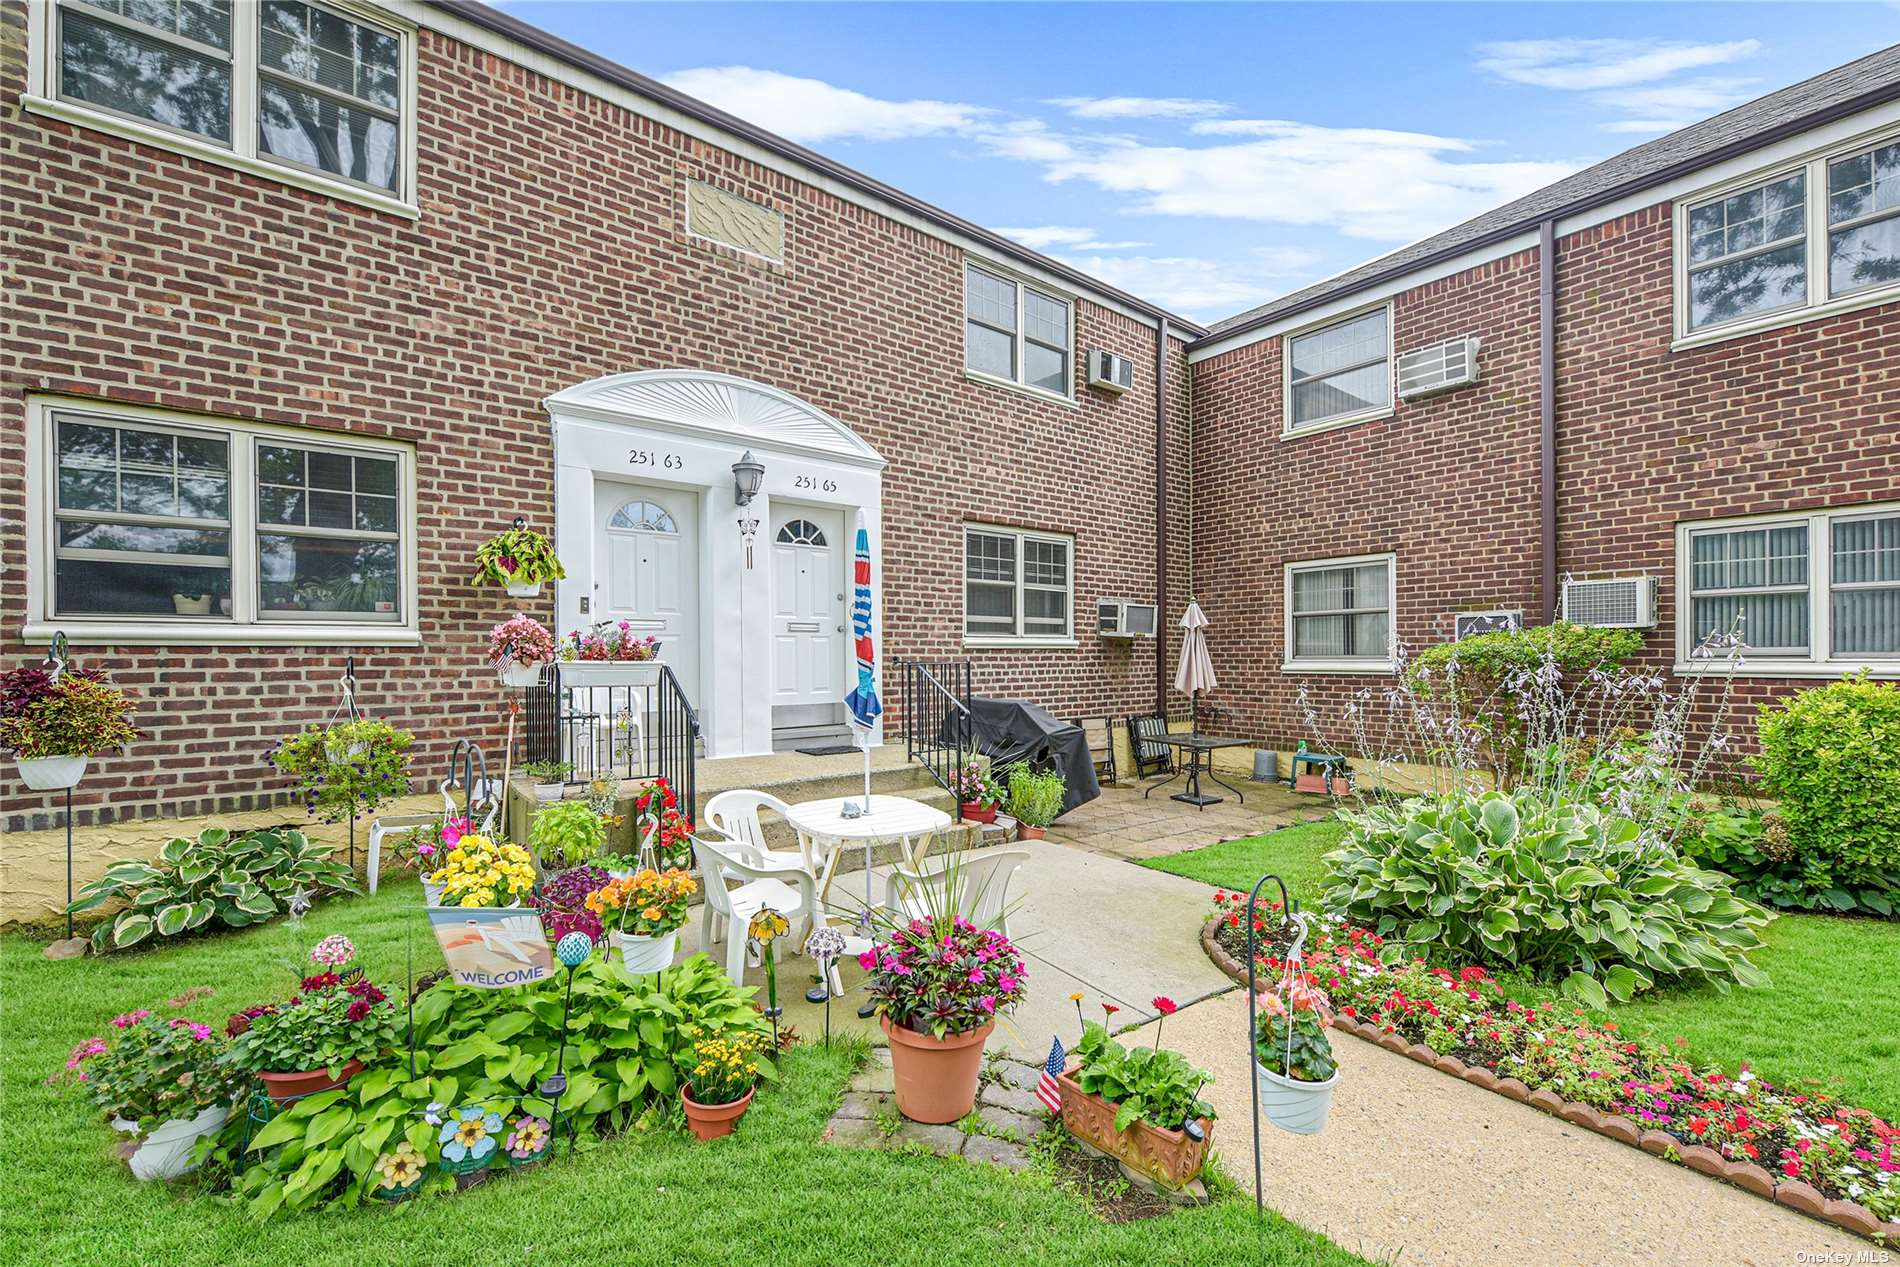 Amazing blank canvass. Four and a half room upper unit in super quiet cul de sac. Tons of natural light. Great parking, access to parks, shops and public transportation.